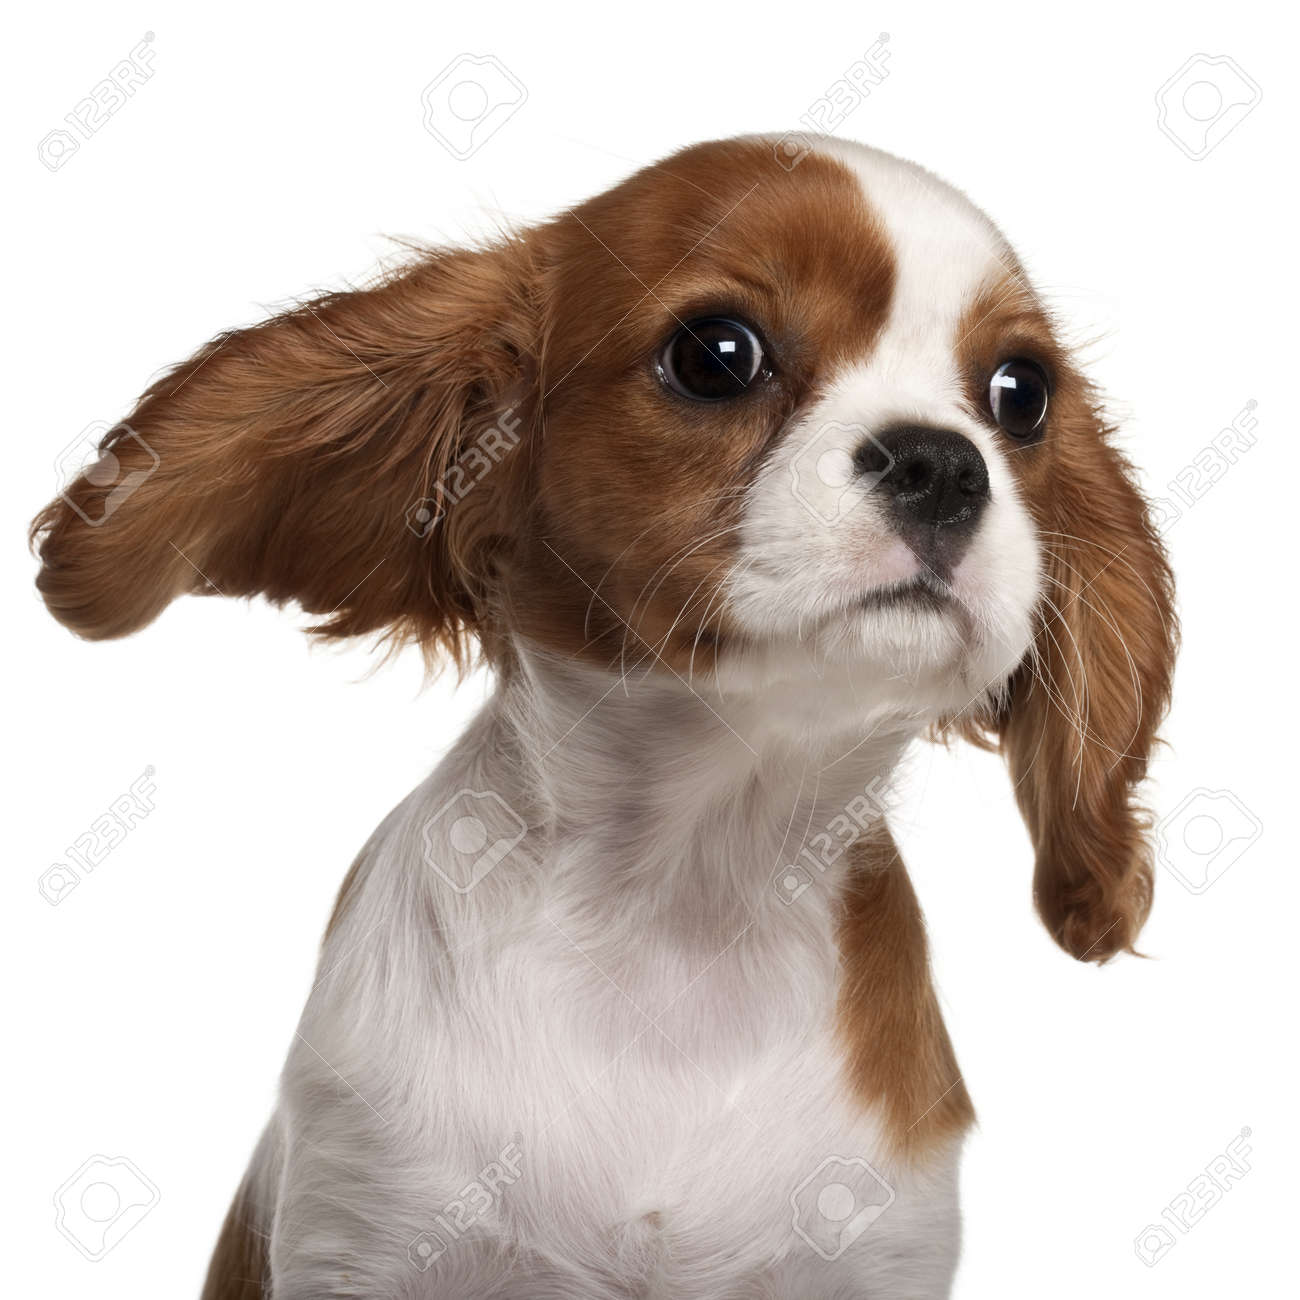 Close up of cavalier king charles spaniel puppy 3 months old close up of cavalier king charles spaniel puppy 3 months old in front thecheapjerseys Images